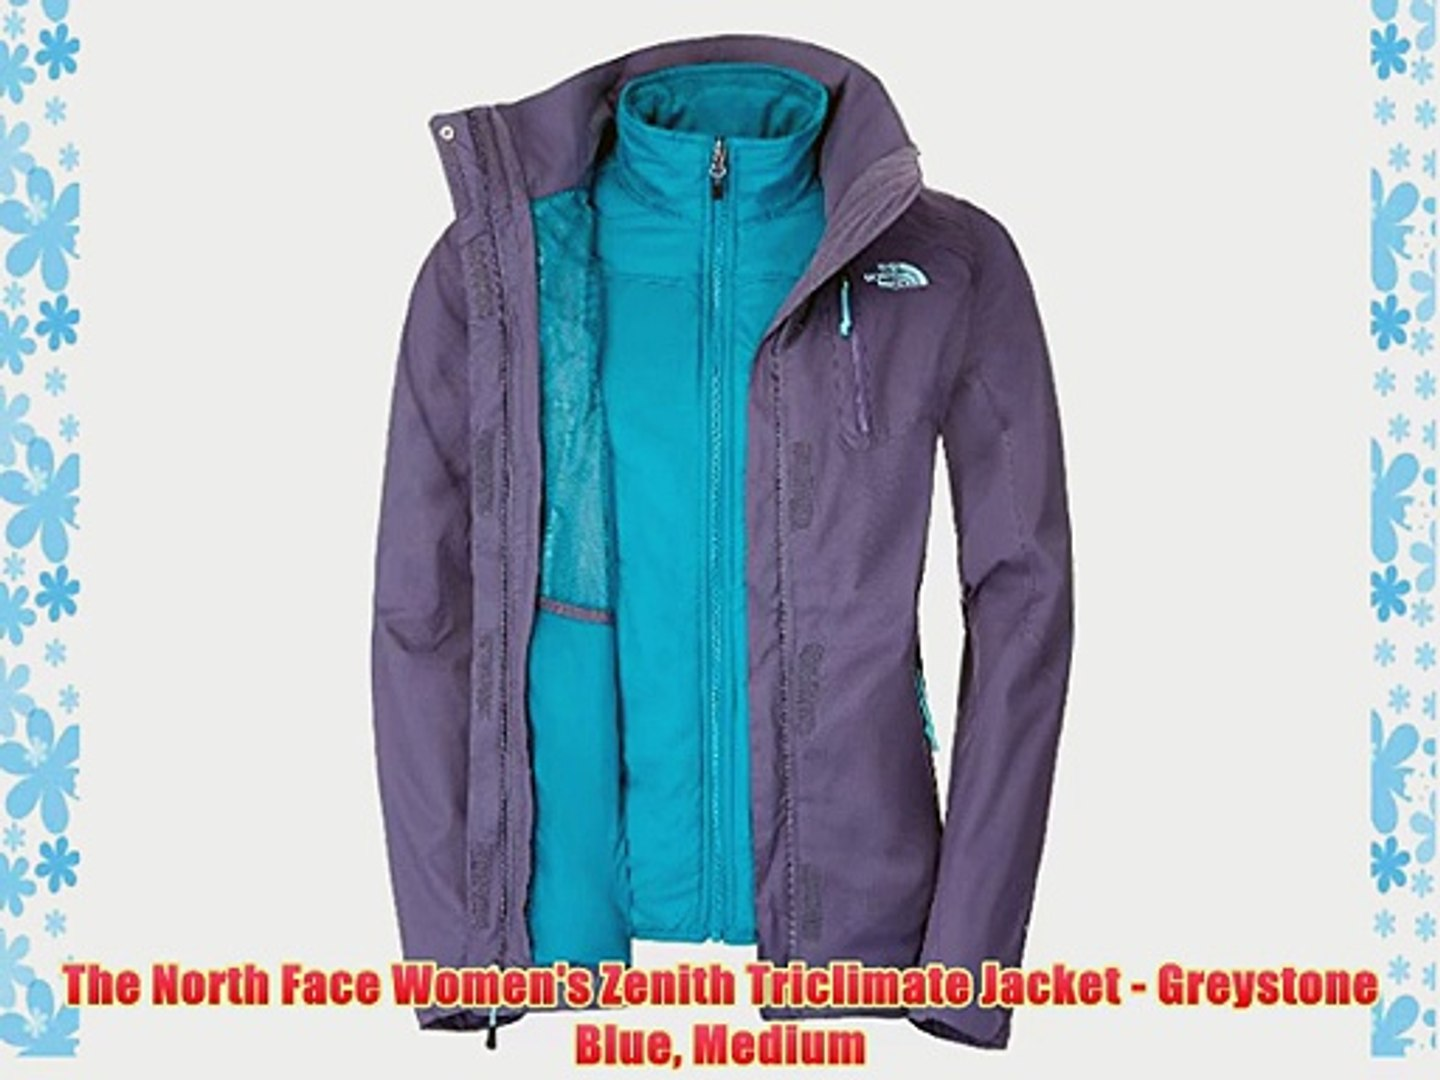 322628501 The North Face Women's Zenith Triclimate Jacket - Greystone Blue Medium